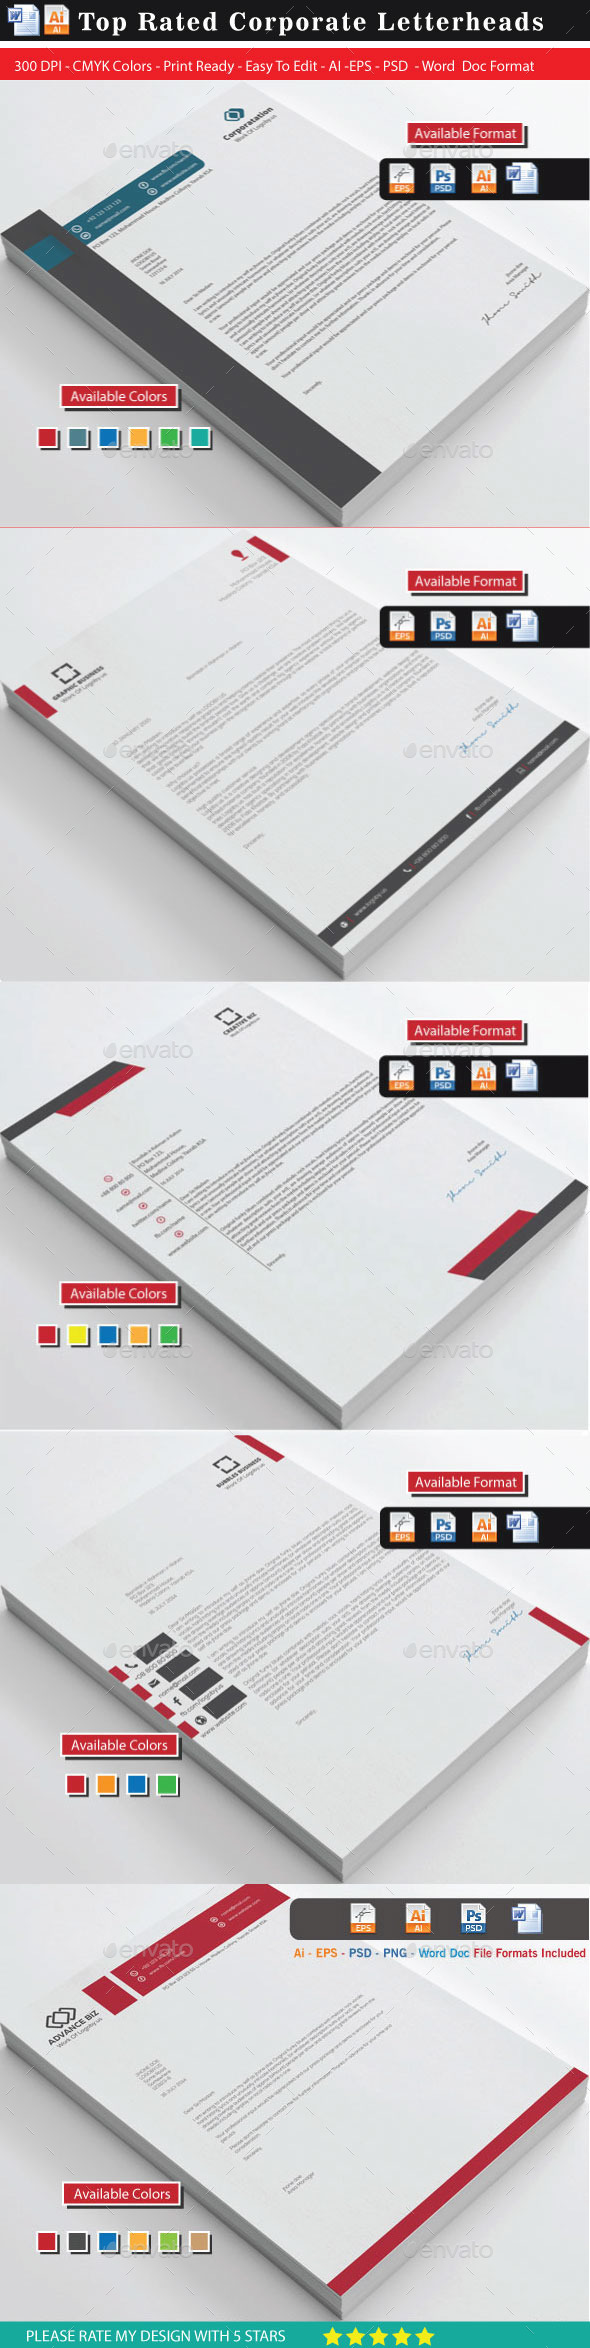 94 Top Rated Corporate Letterhead Bundle 1 - Stationery Print Templates